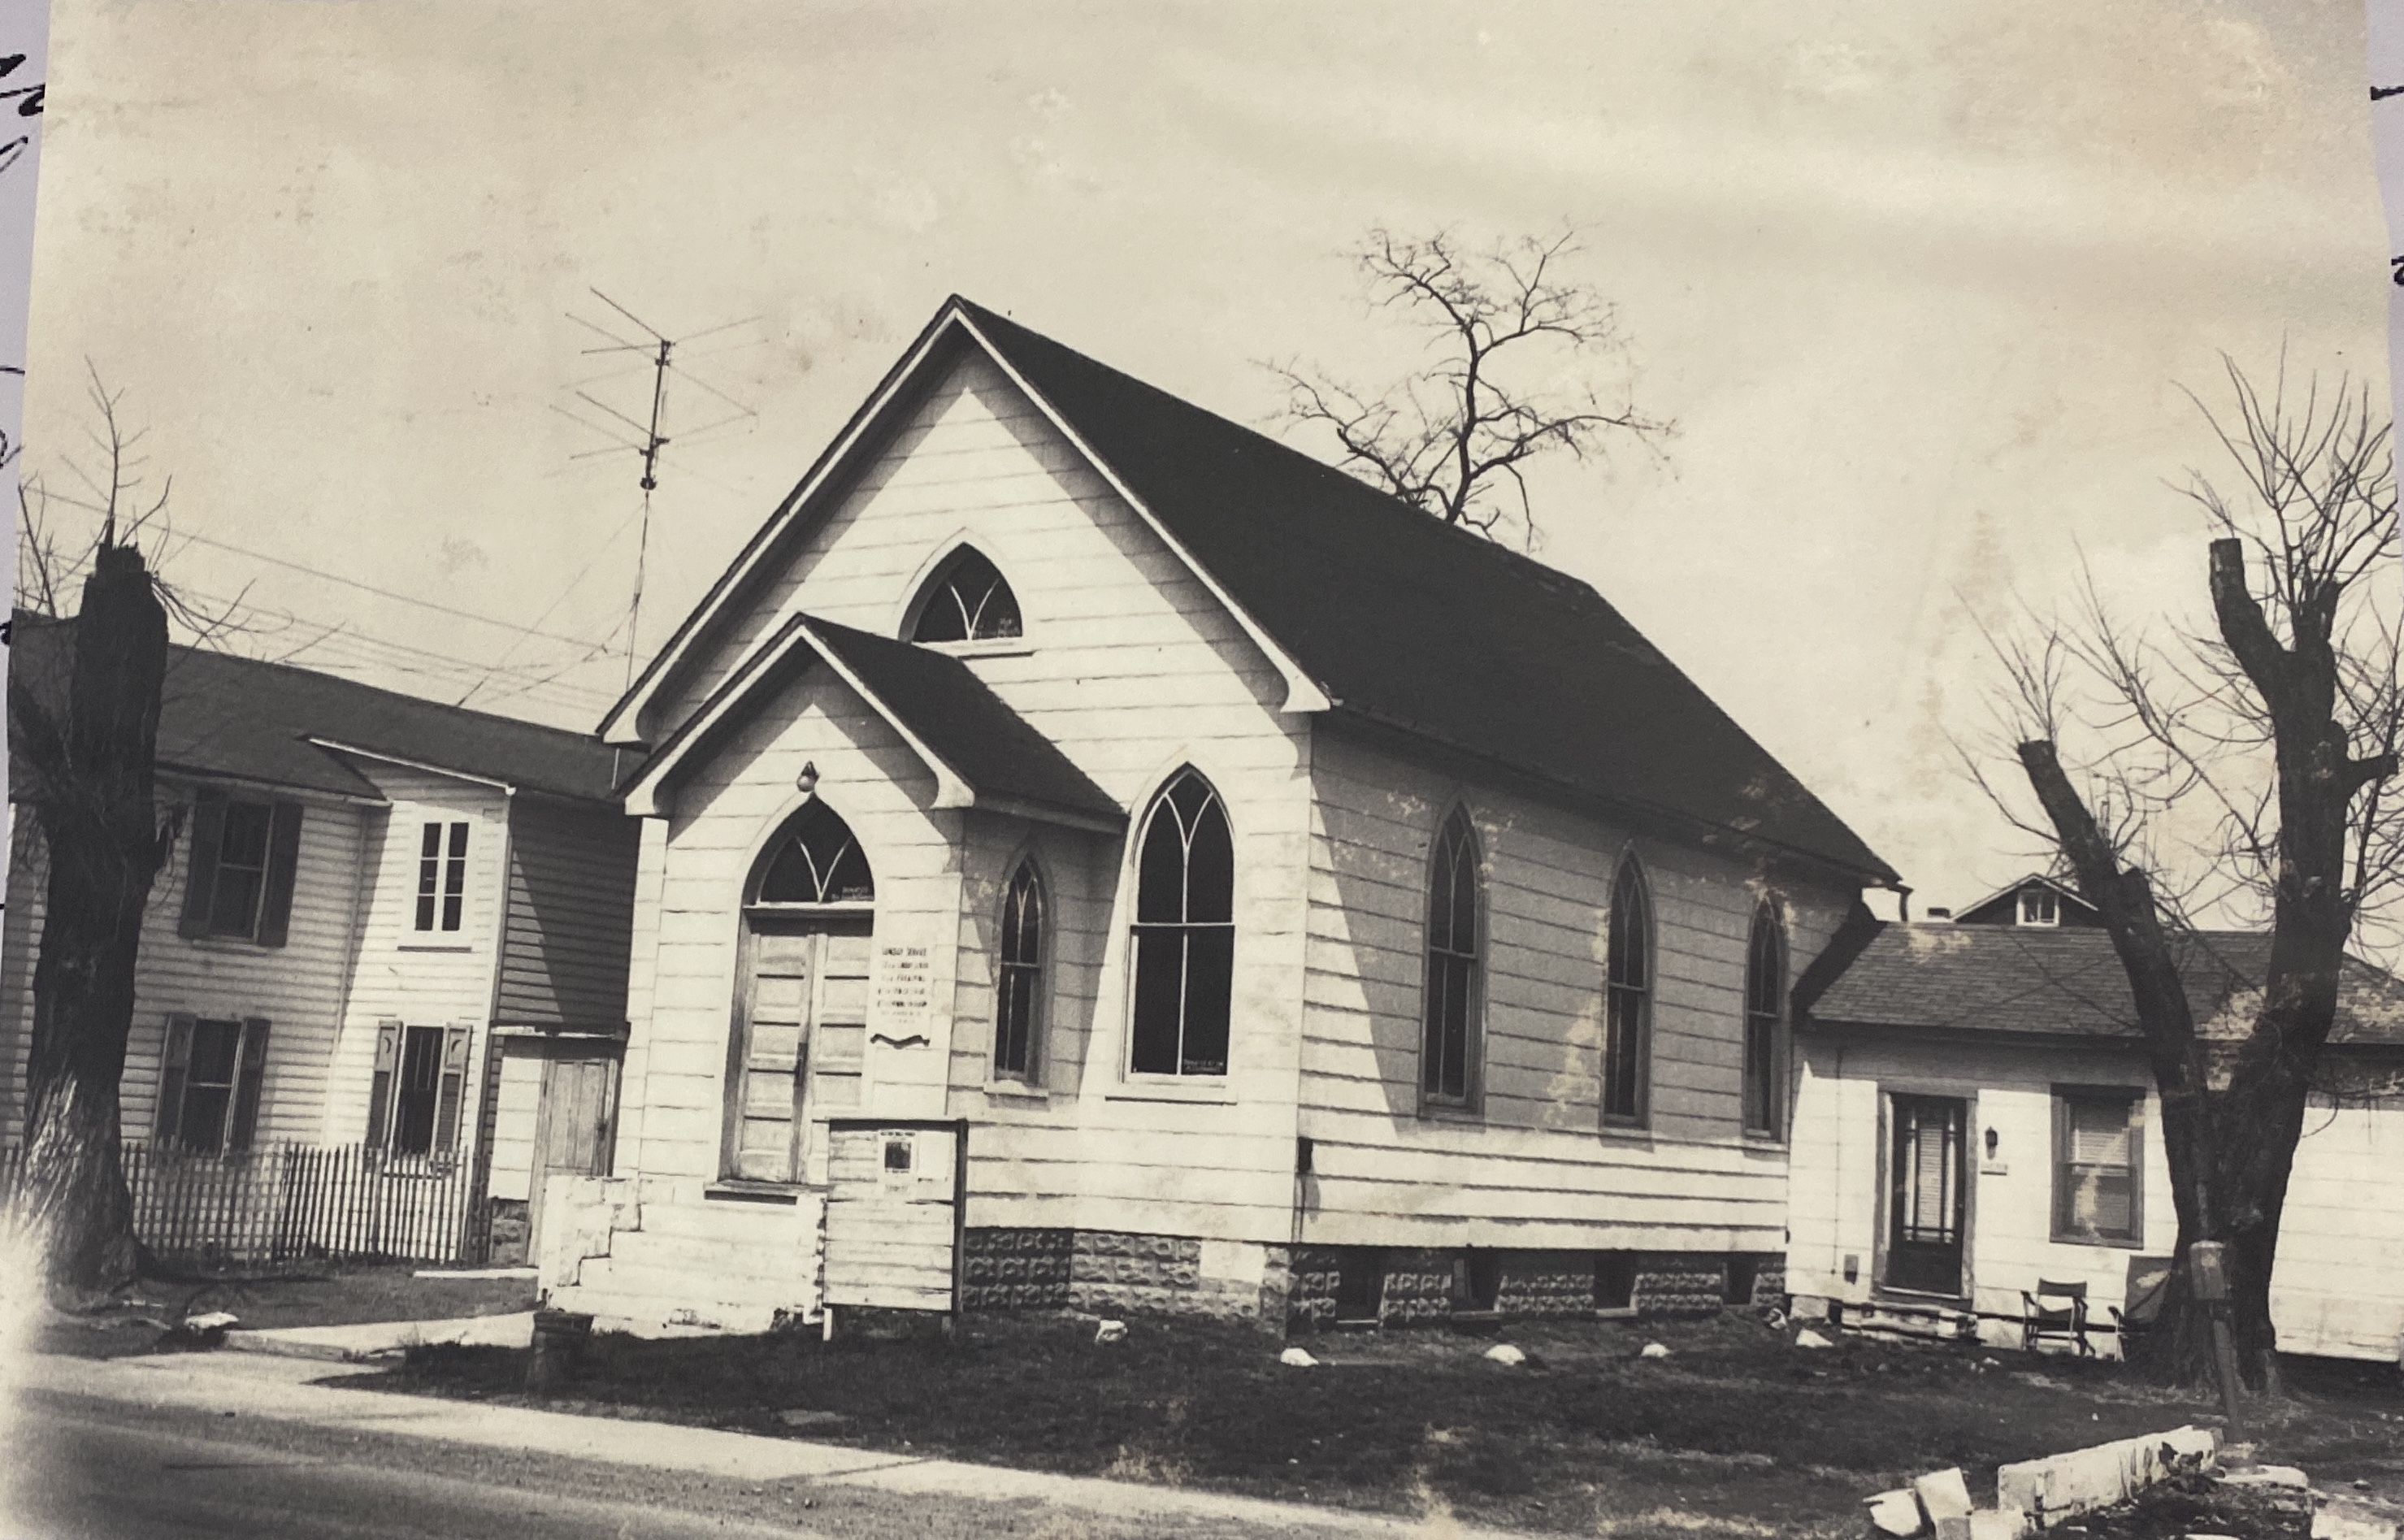 The St. Mathew African Union Methodist Protestant Church provided extra space when the school began to experience overcrowding. The church held assemblies and club meetings.